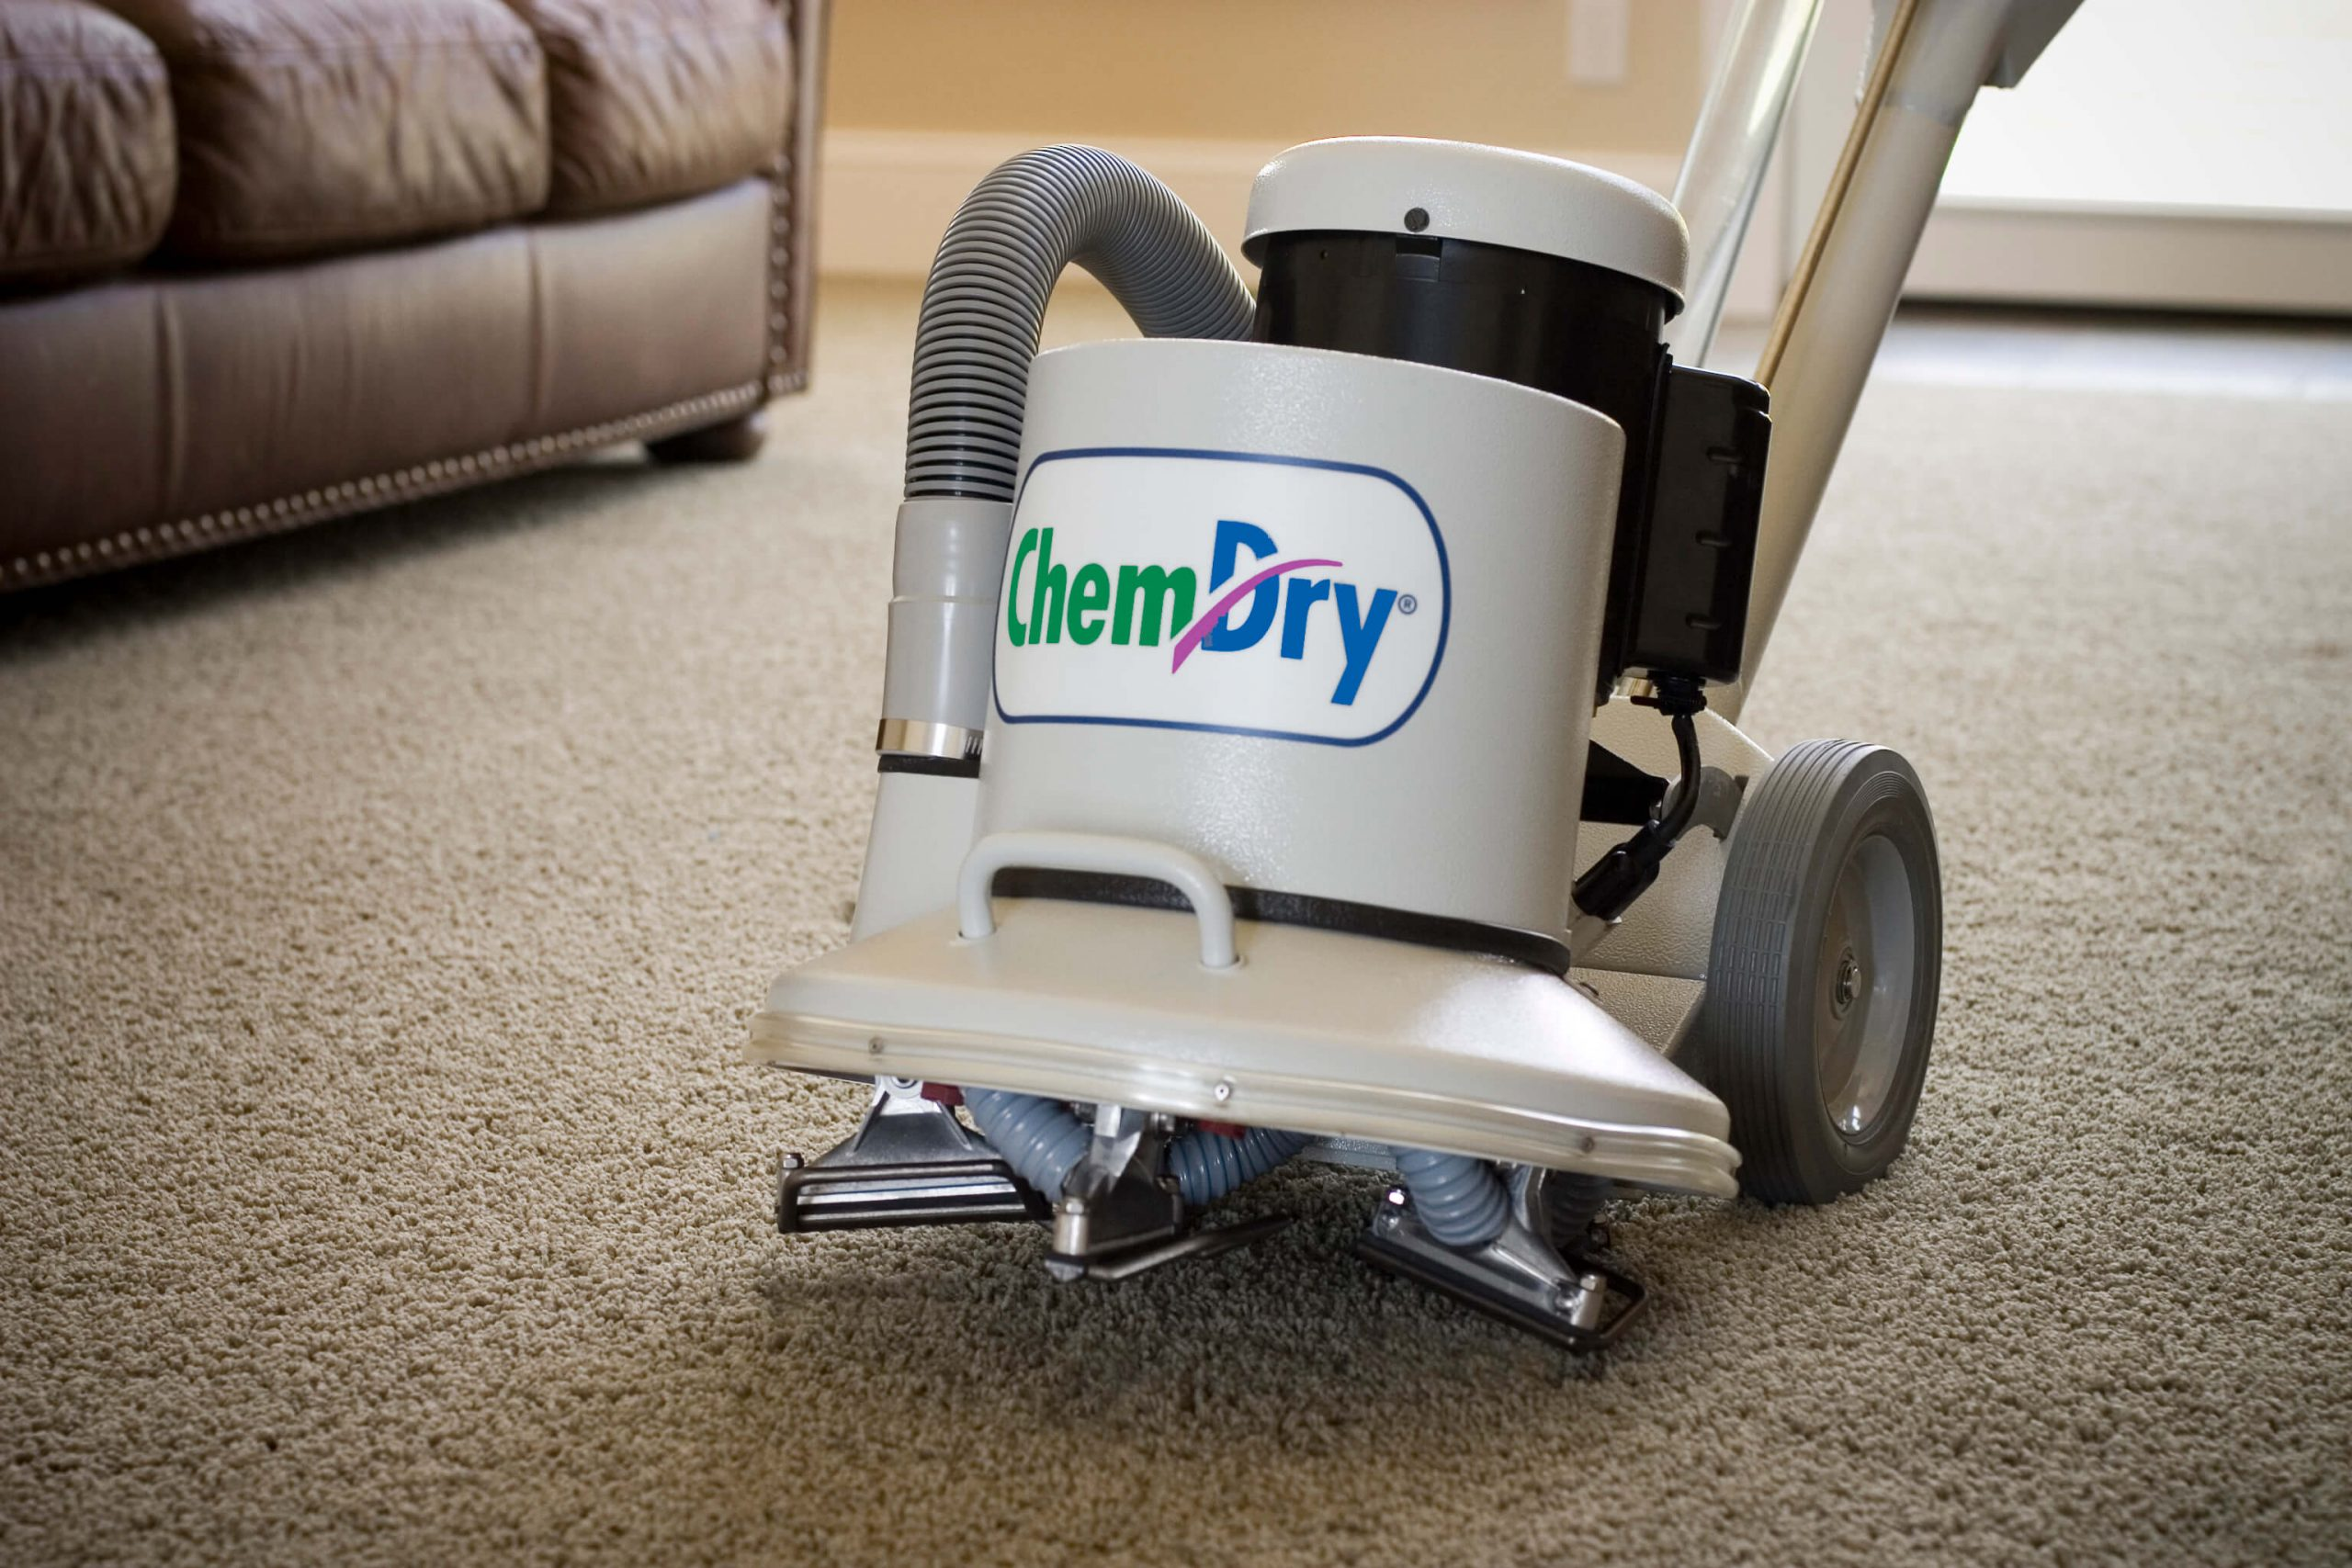 Chem-Dry cleaning equipment for carpet cleaning in Minneapolis